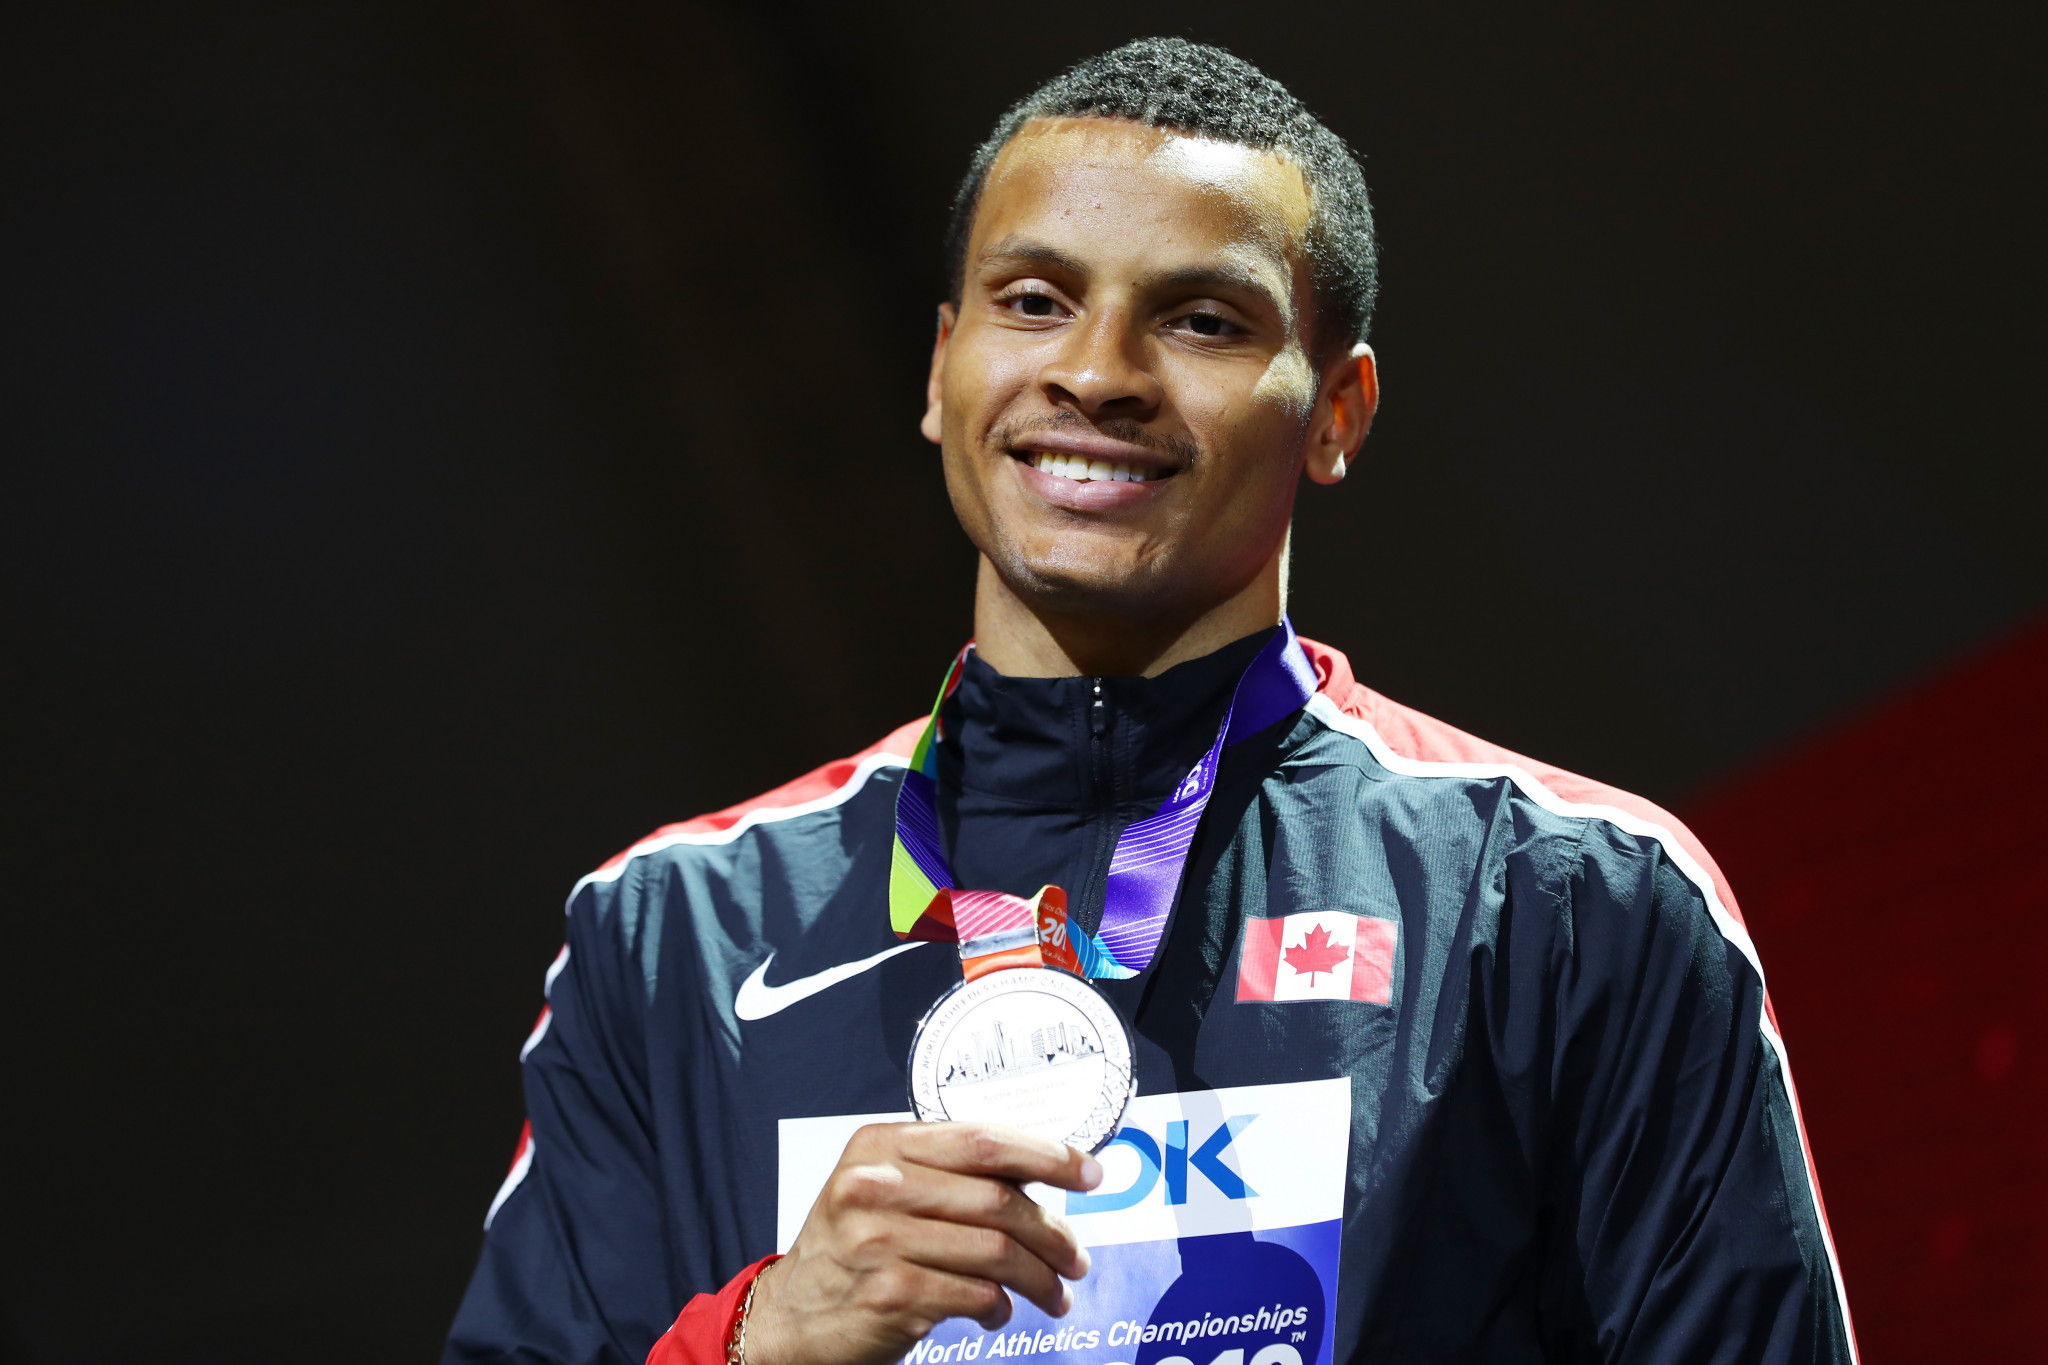 Andre De Grasse won silver and bronze medals at last year's World Championships ©Getty Images